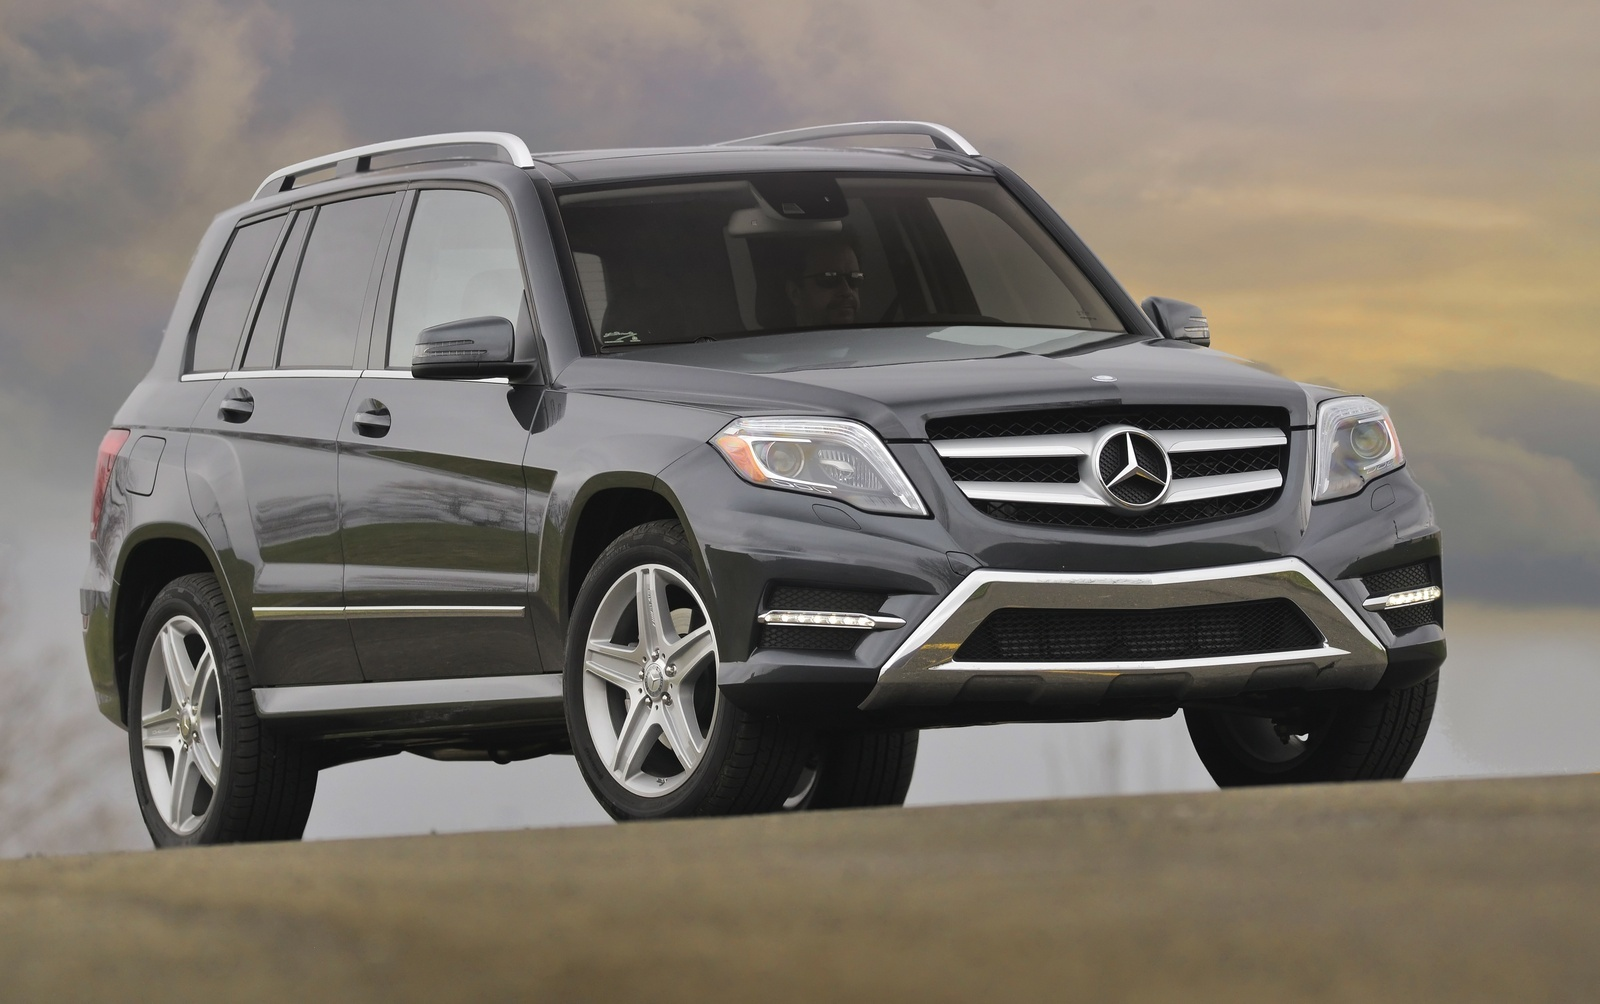 2014 mercedes benz glk class overview cargurus. Black Bedroom Furniture Sets. Home Design Ideas